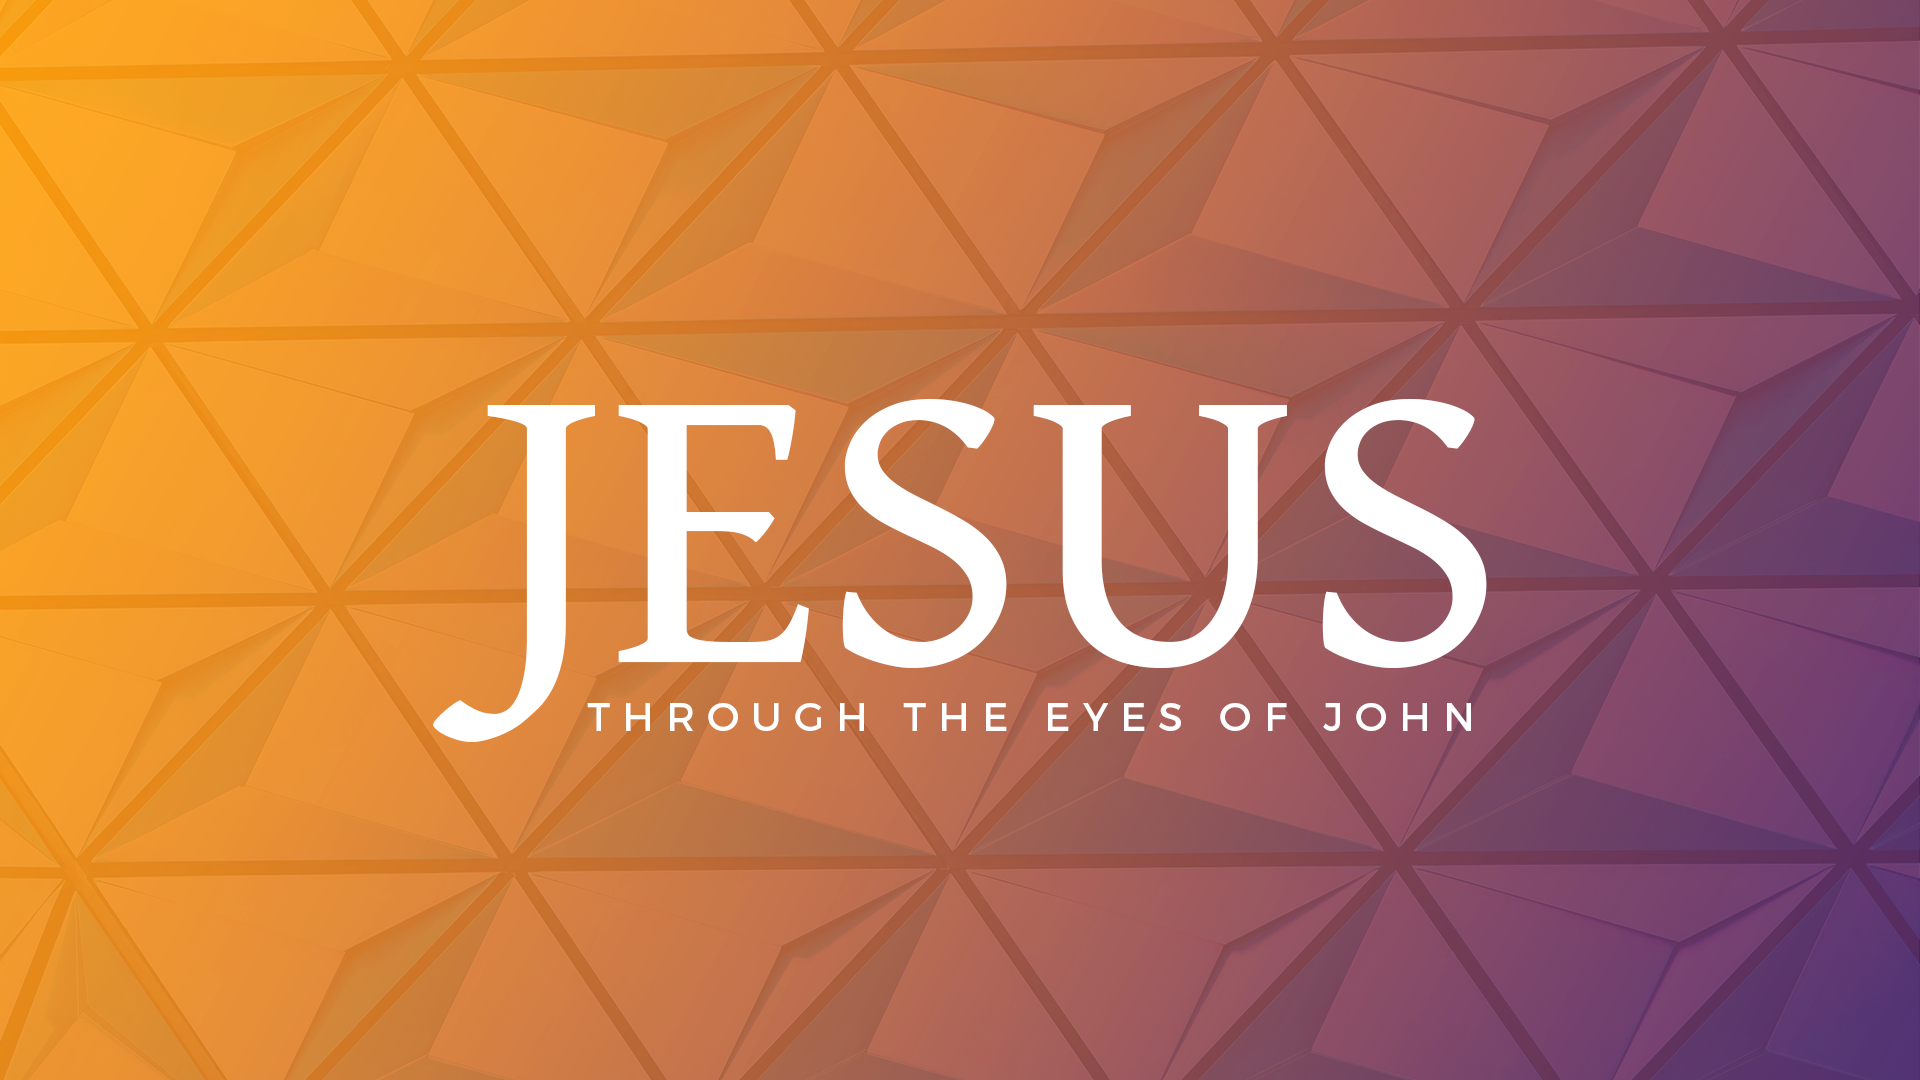 Jesus-Through the Eyes of John VII